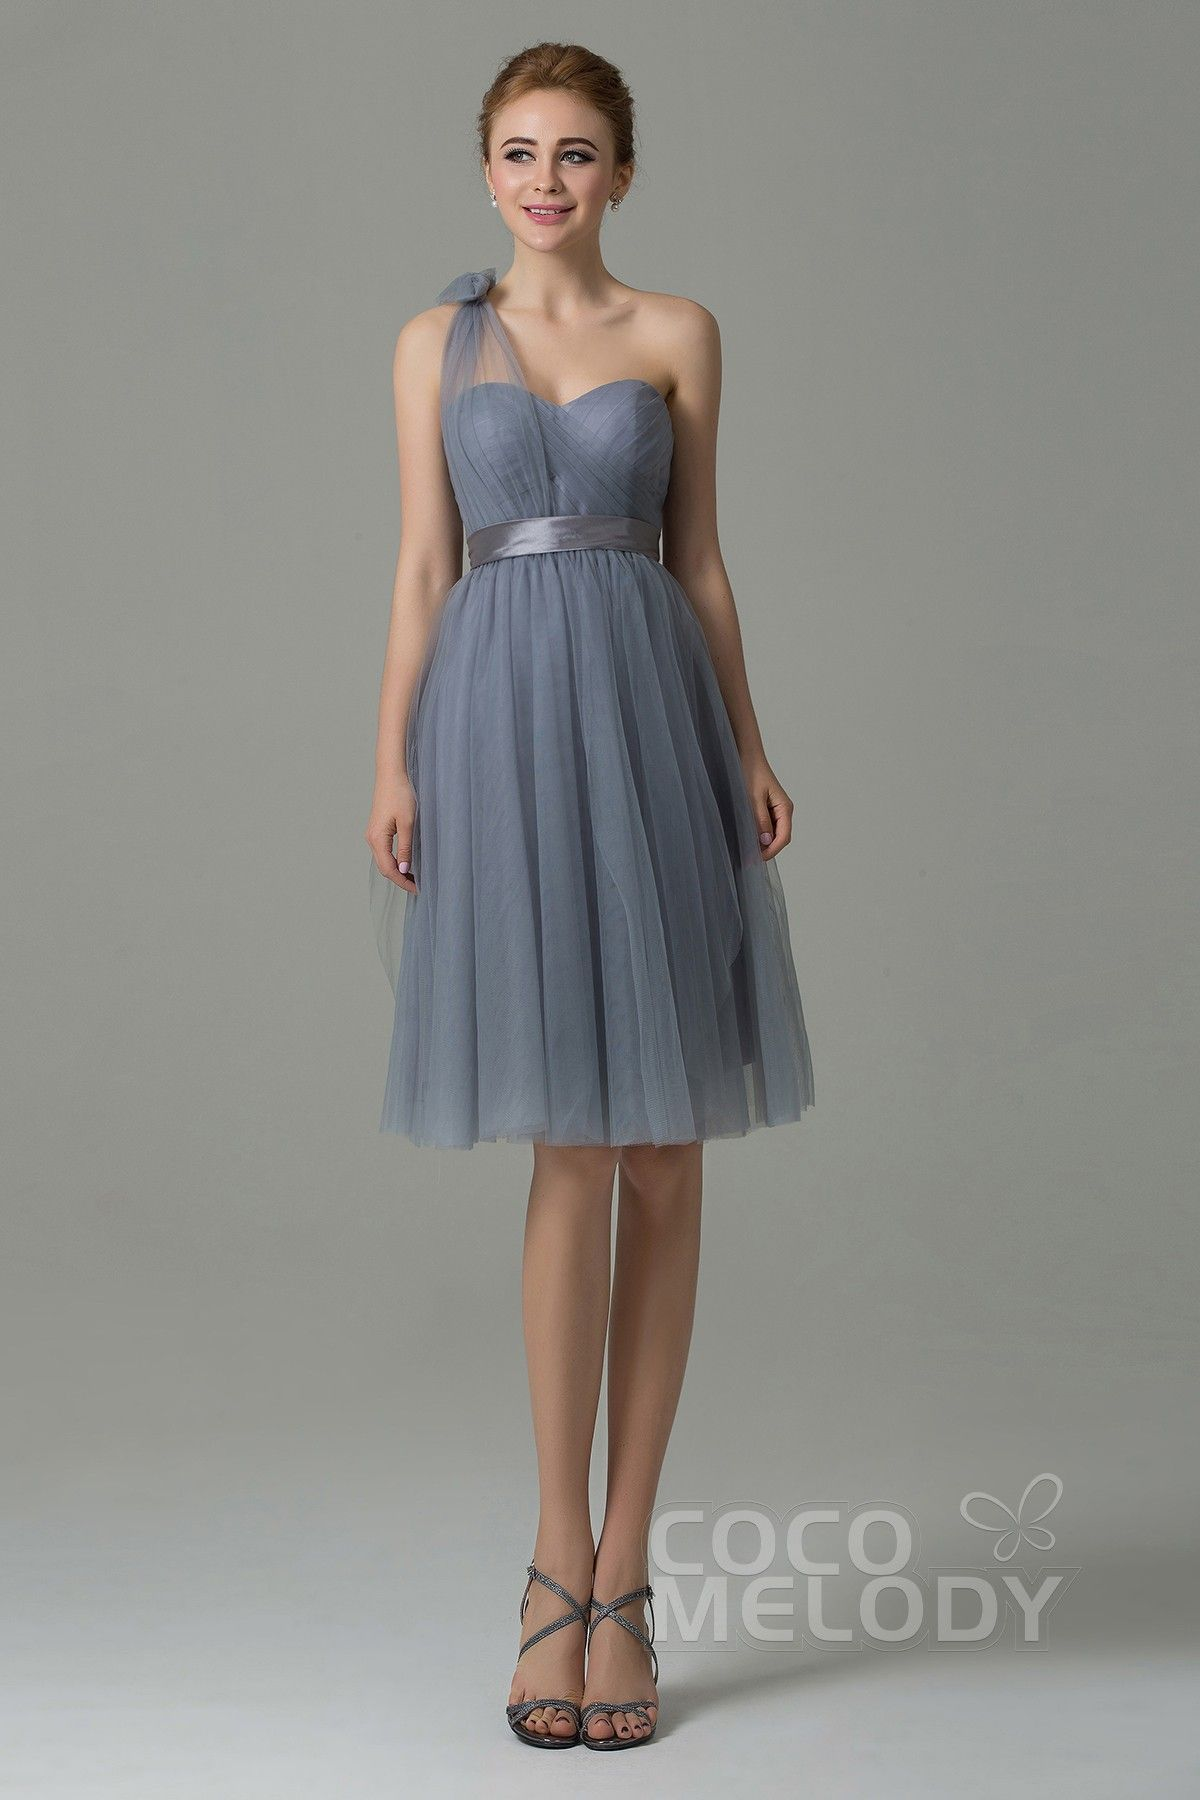 42ddb94ad78e Chic Sweetheart Natural Knee Length Tulle Gray Sleeveless Zipper Convertible  Bridesmaid Dress with Ribbons COZM15016